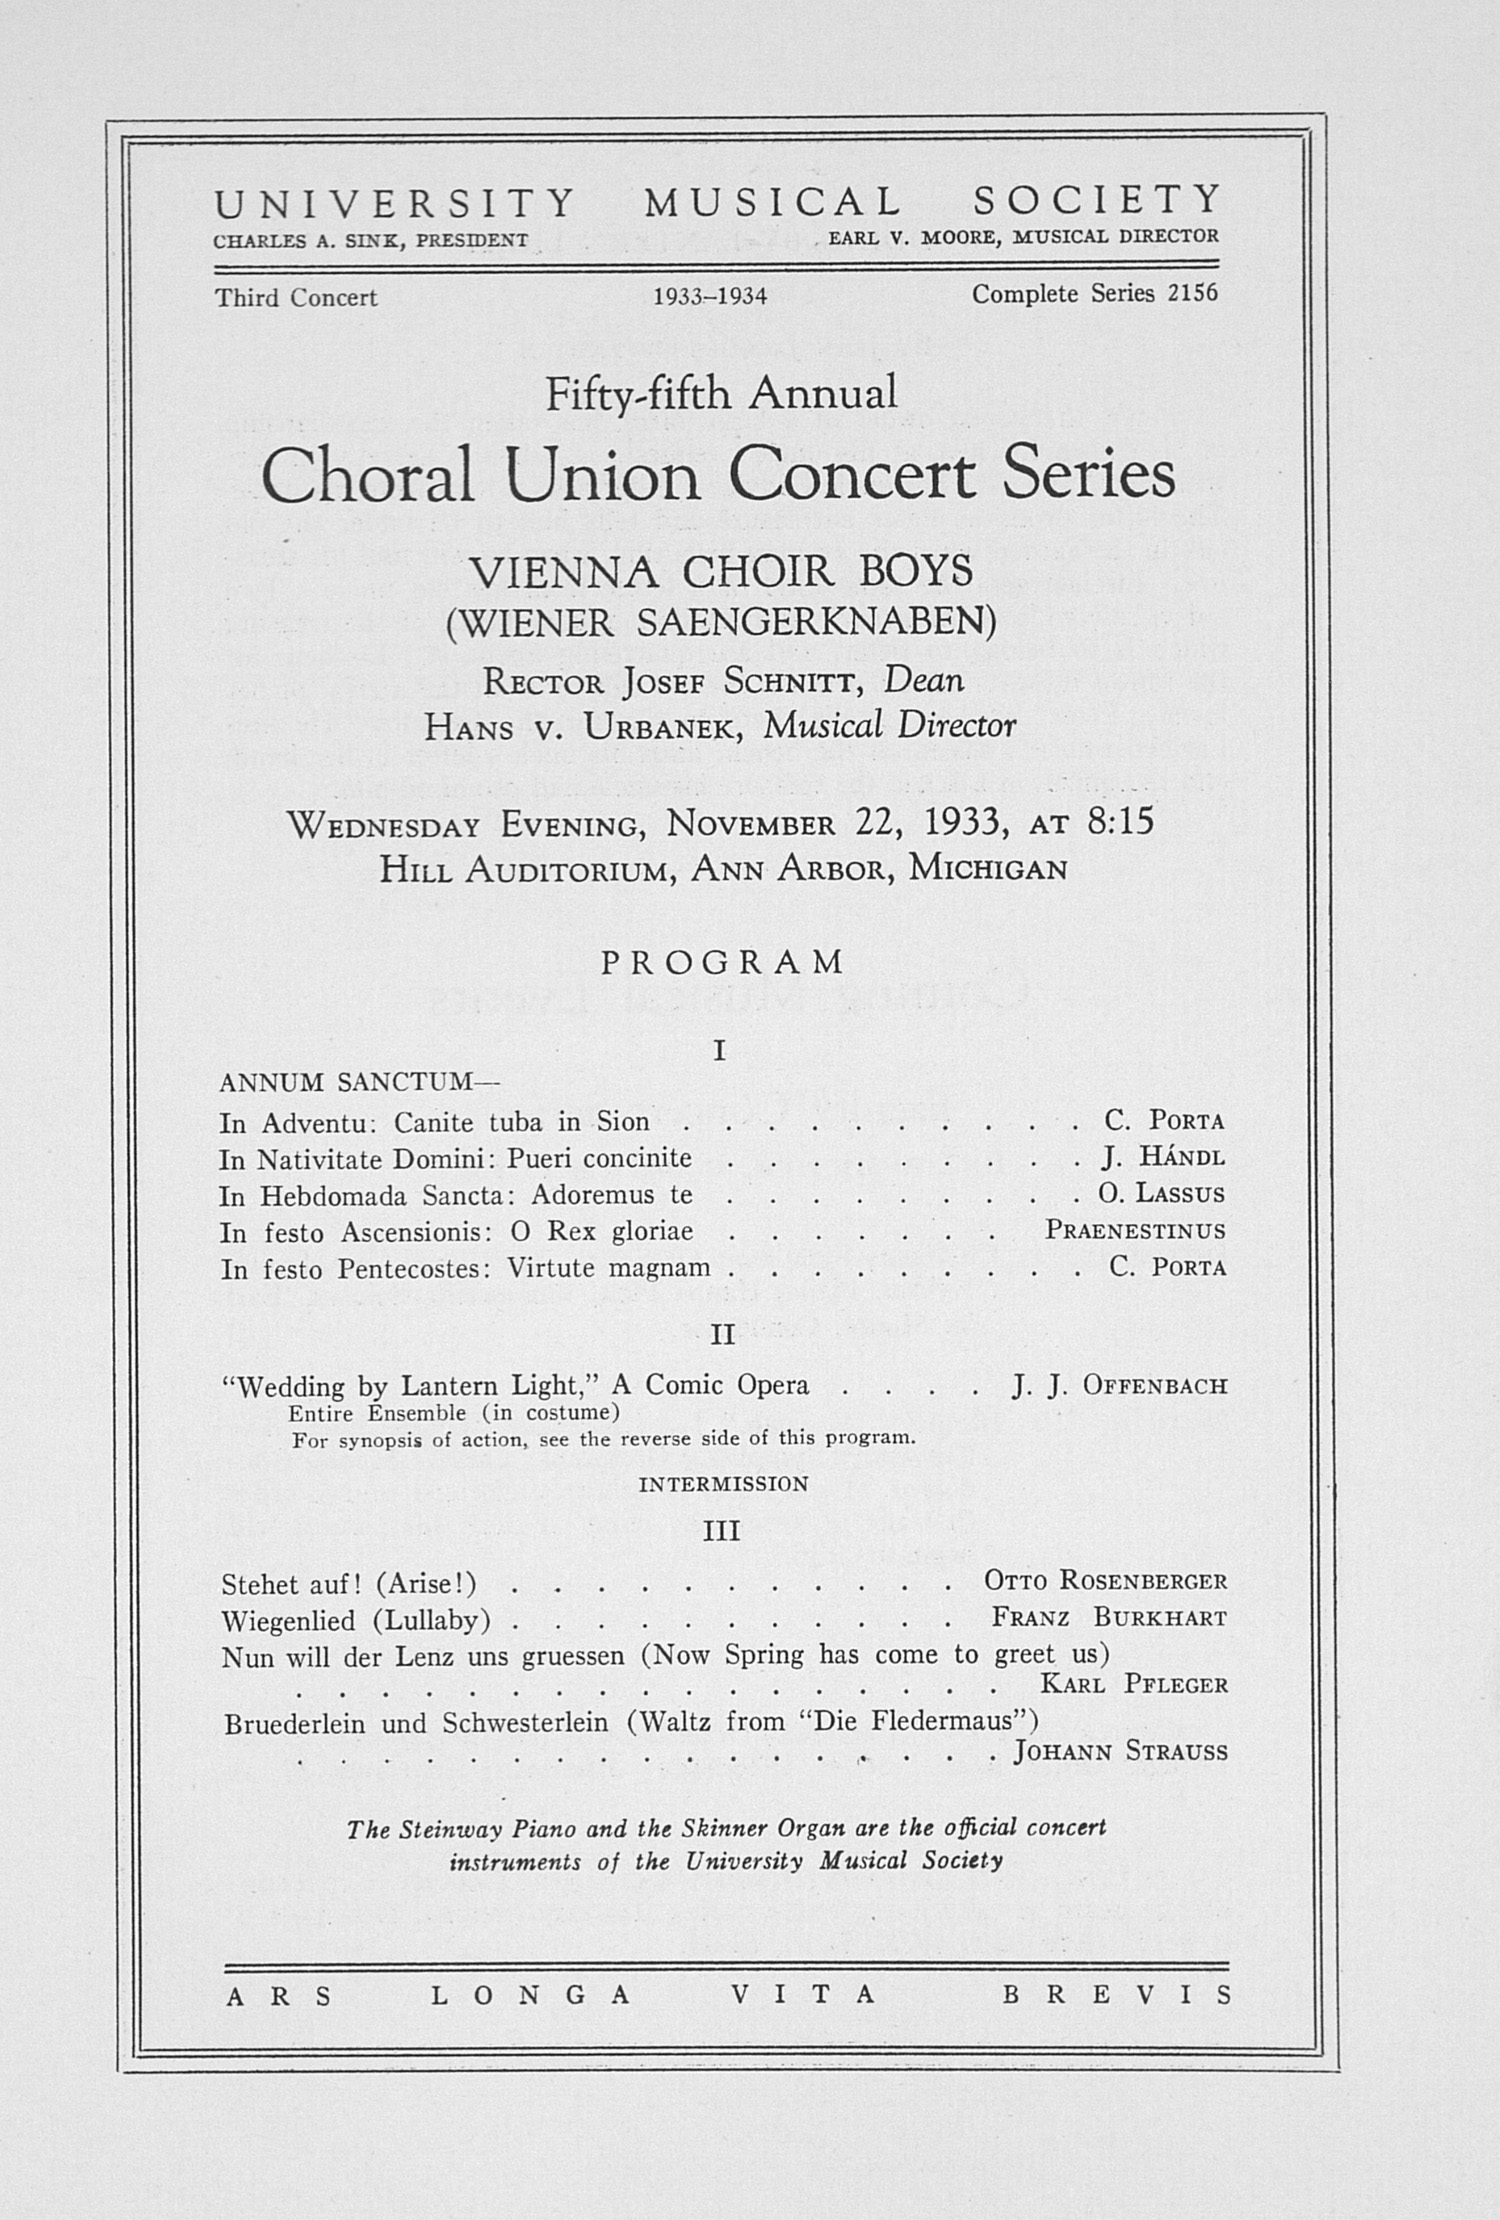 UMS Concert Program, November 22, 1933: Fifty-fifth Annual Choral Union Concert Series -- Vienna Choir Boys image